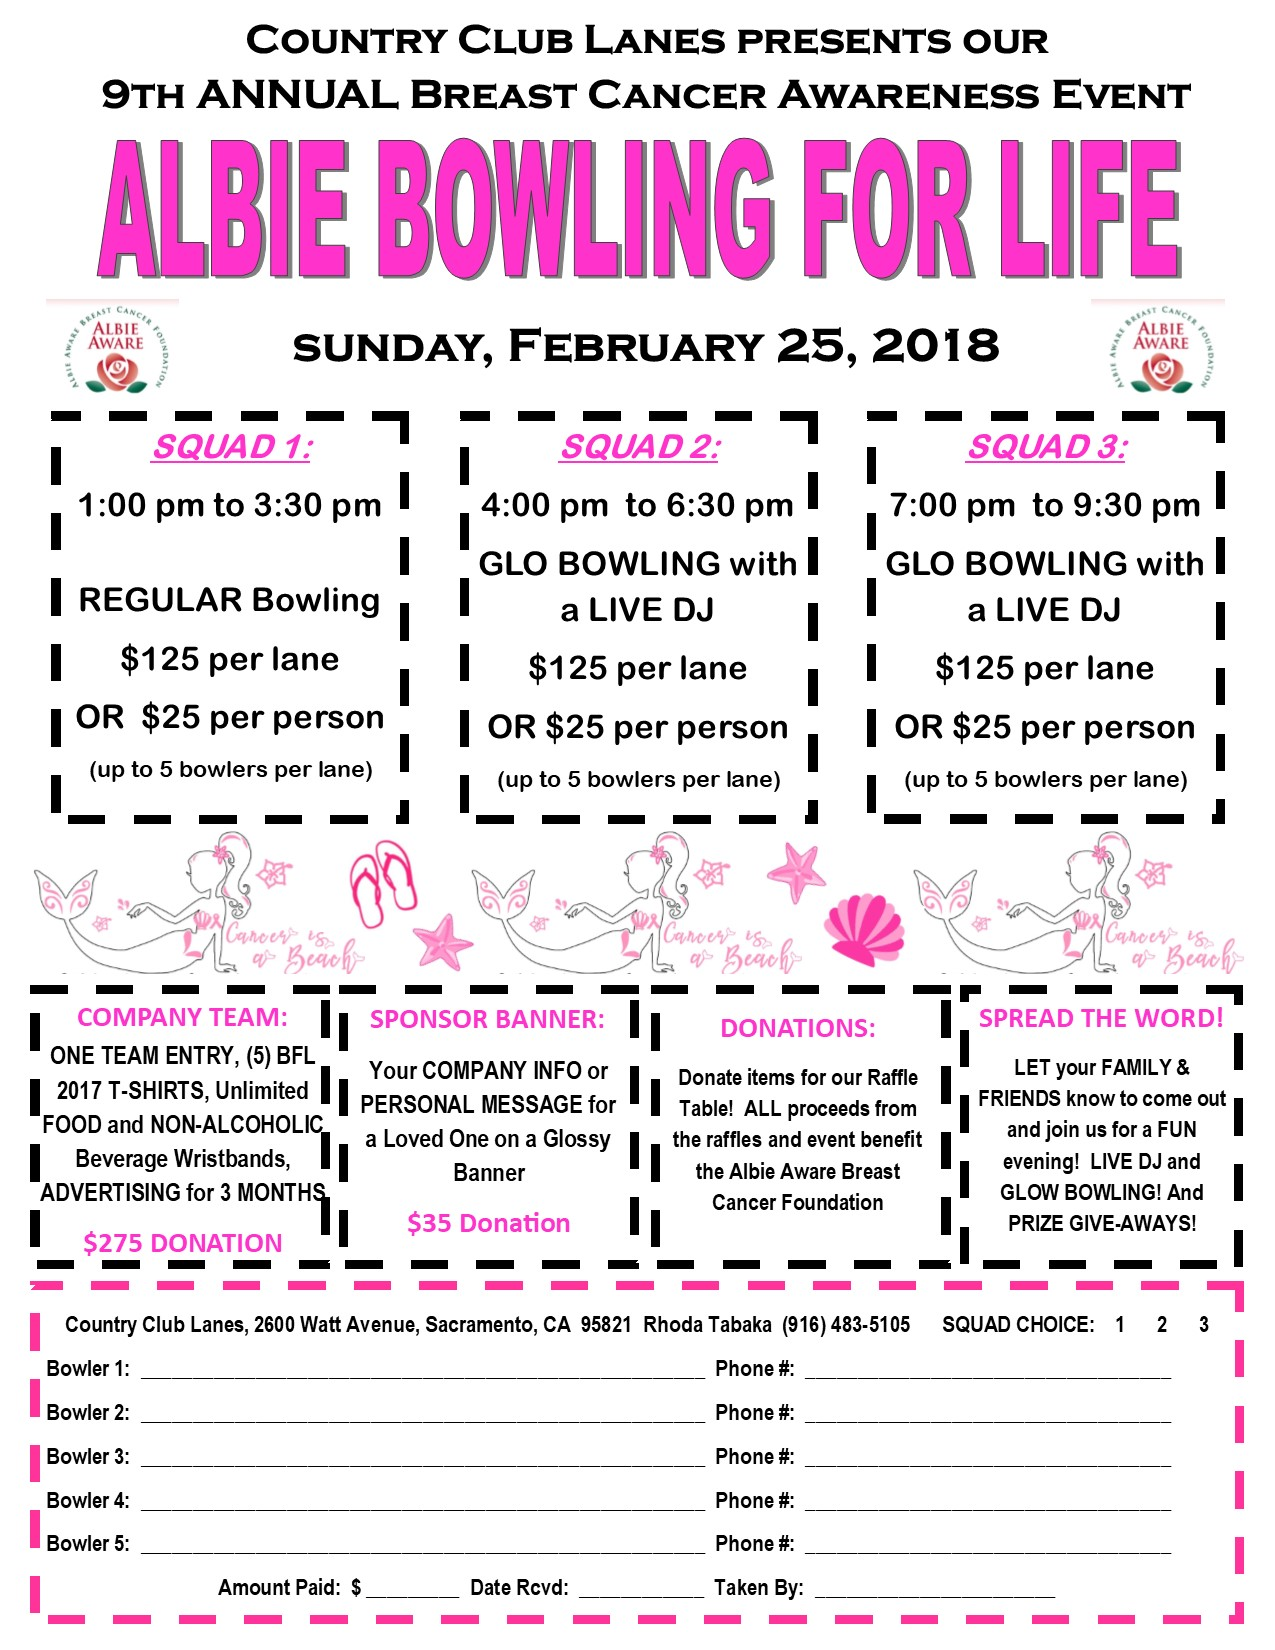 CCL Albie Bowling for Life Flyer